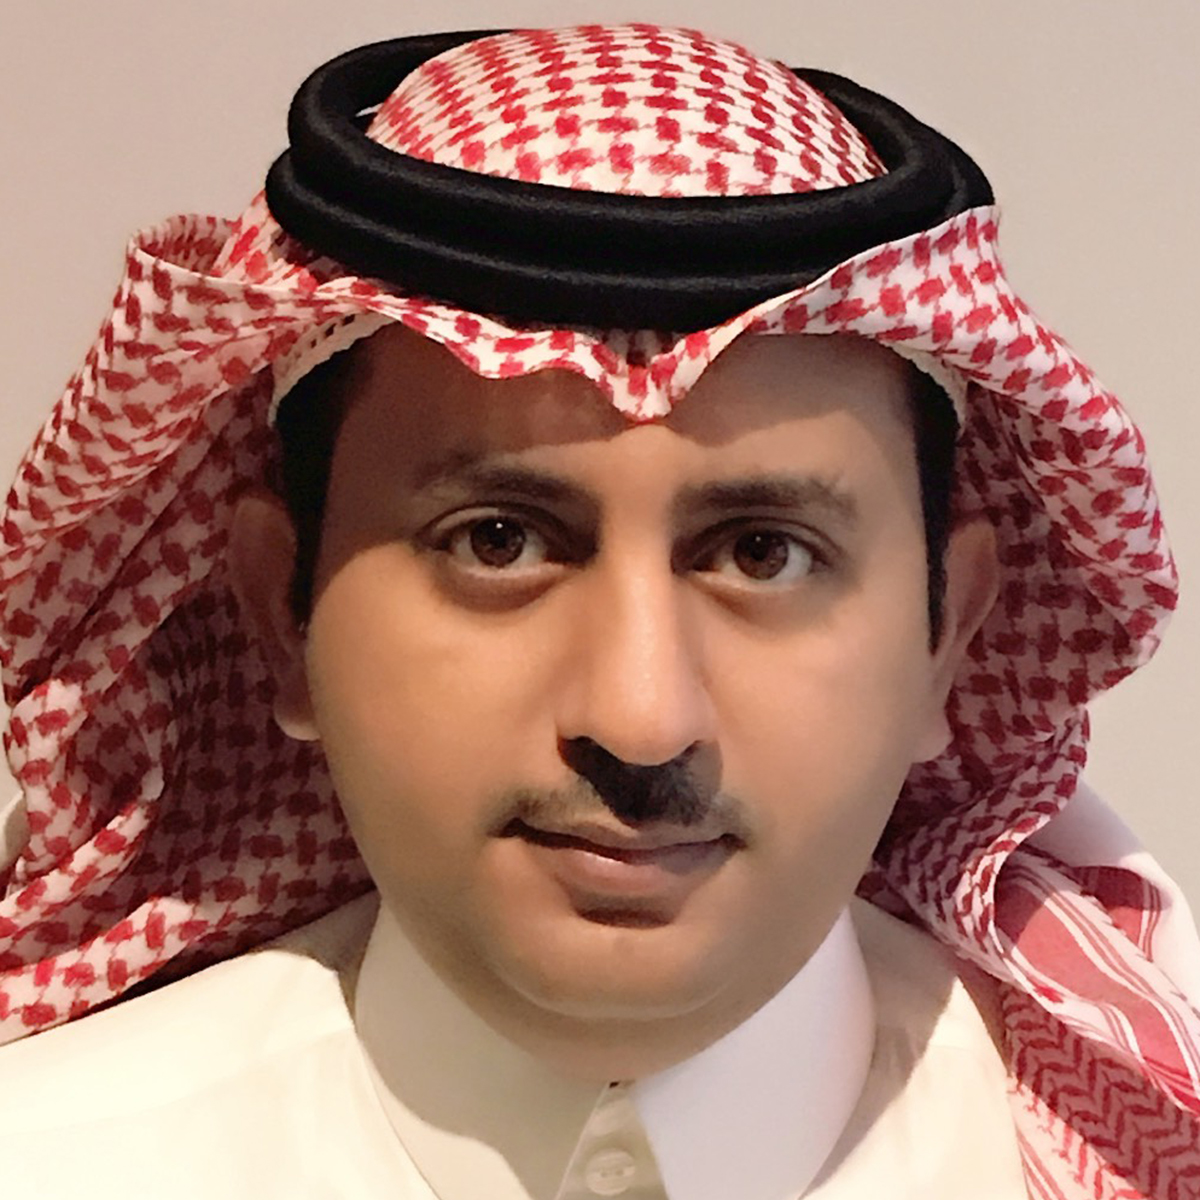 Abdullah Maghram, Speaker, Researcher, Virtual Reality Expert, and Director at Saudi Arabia